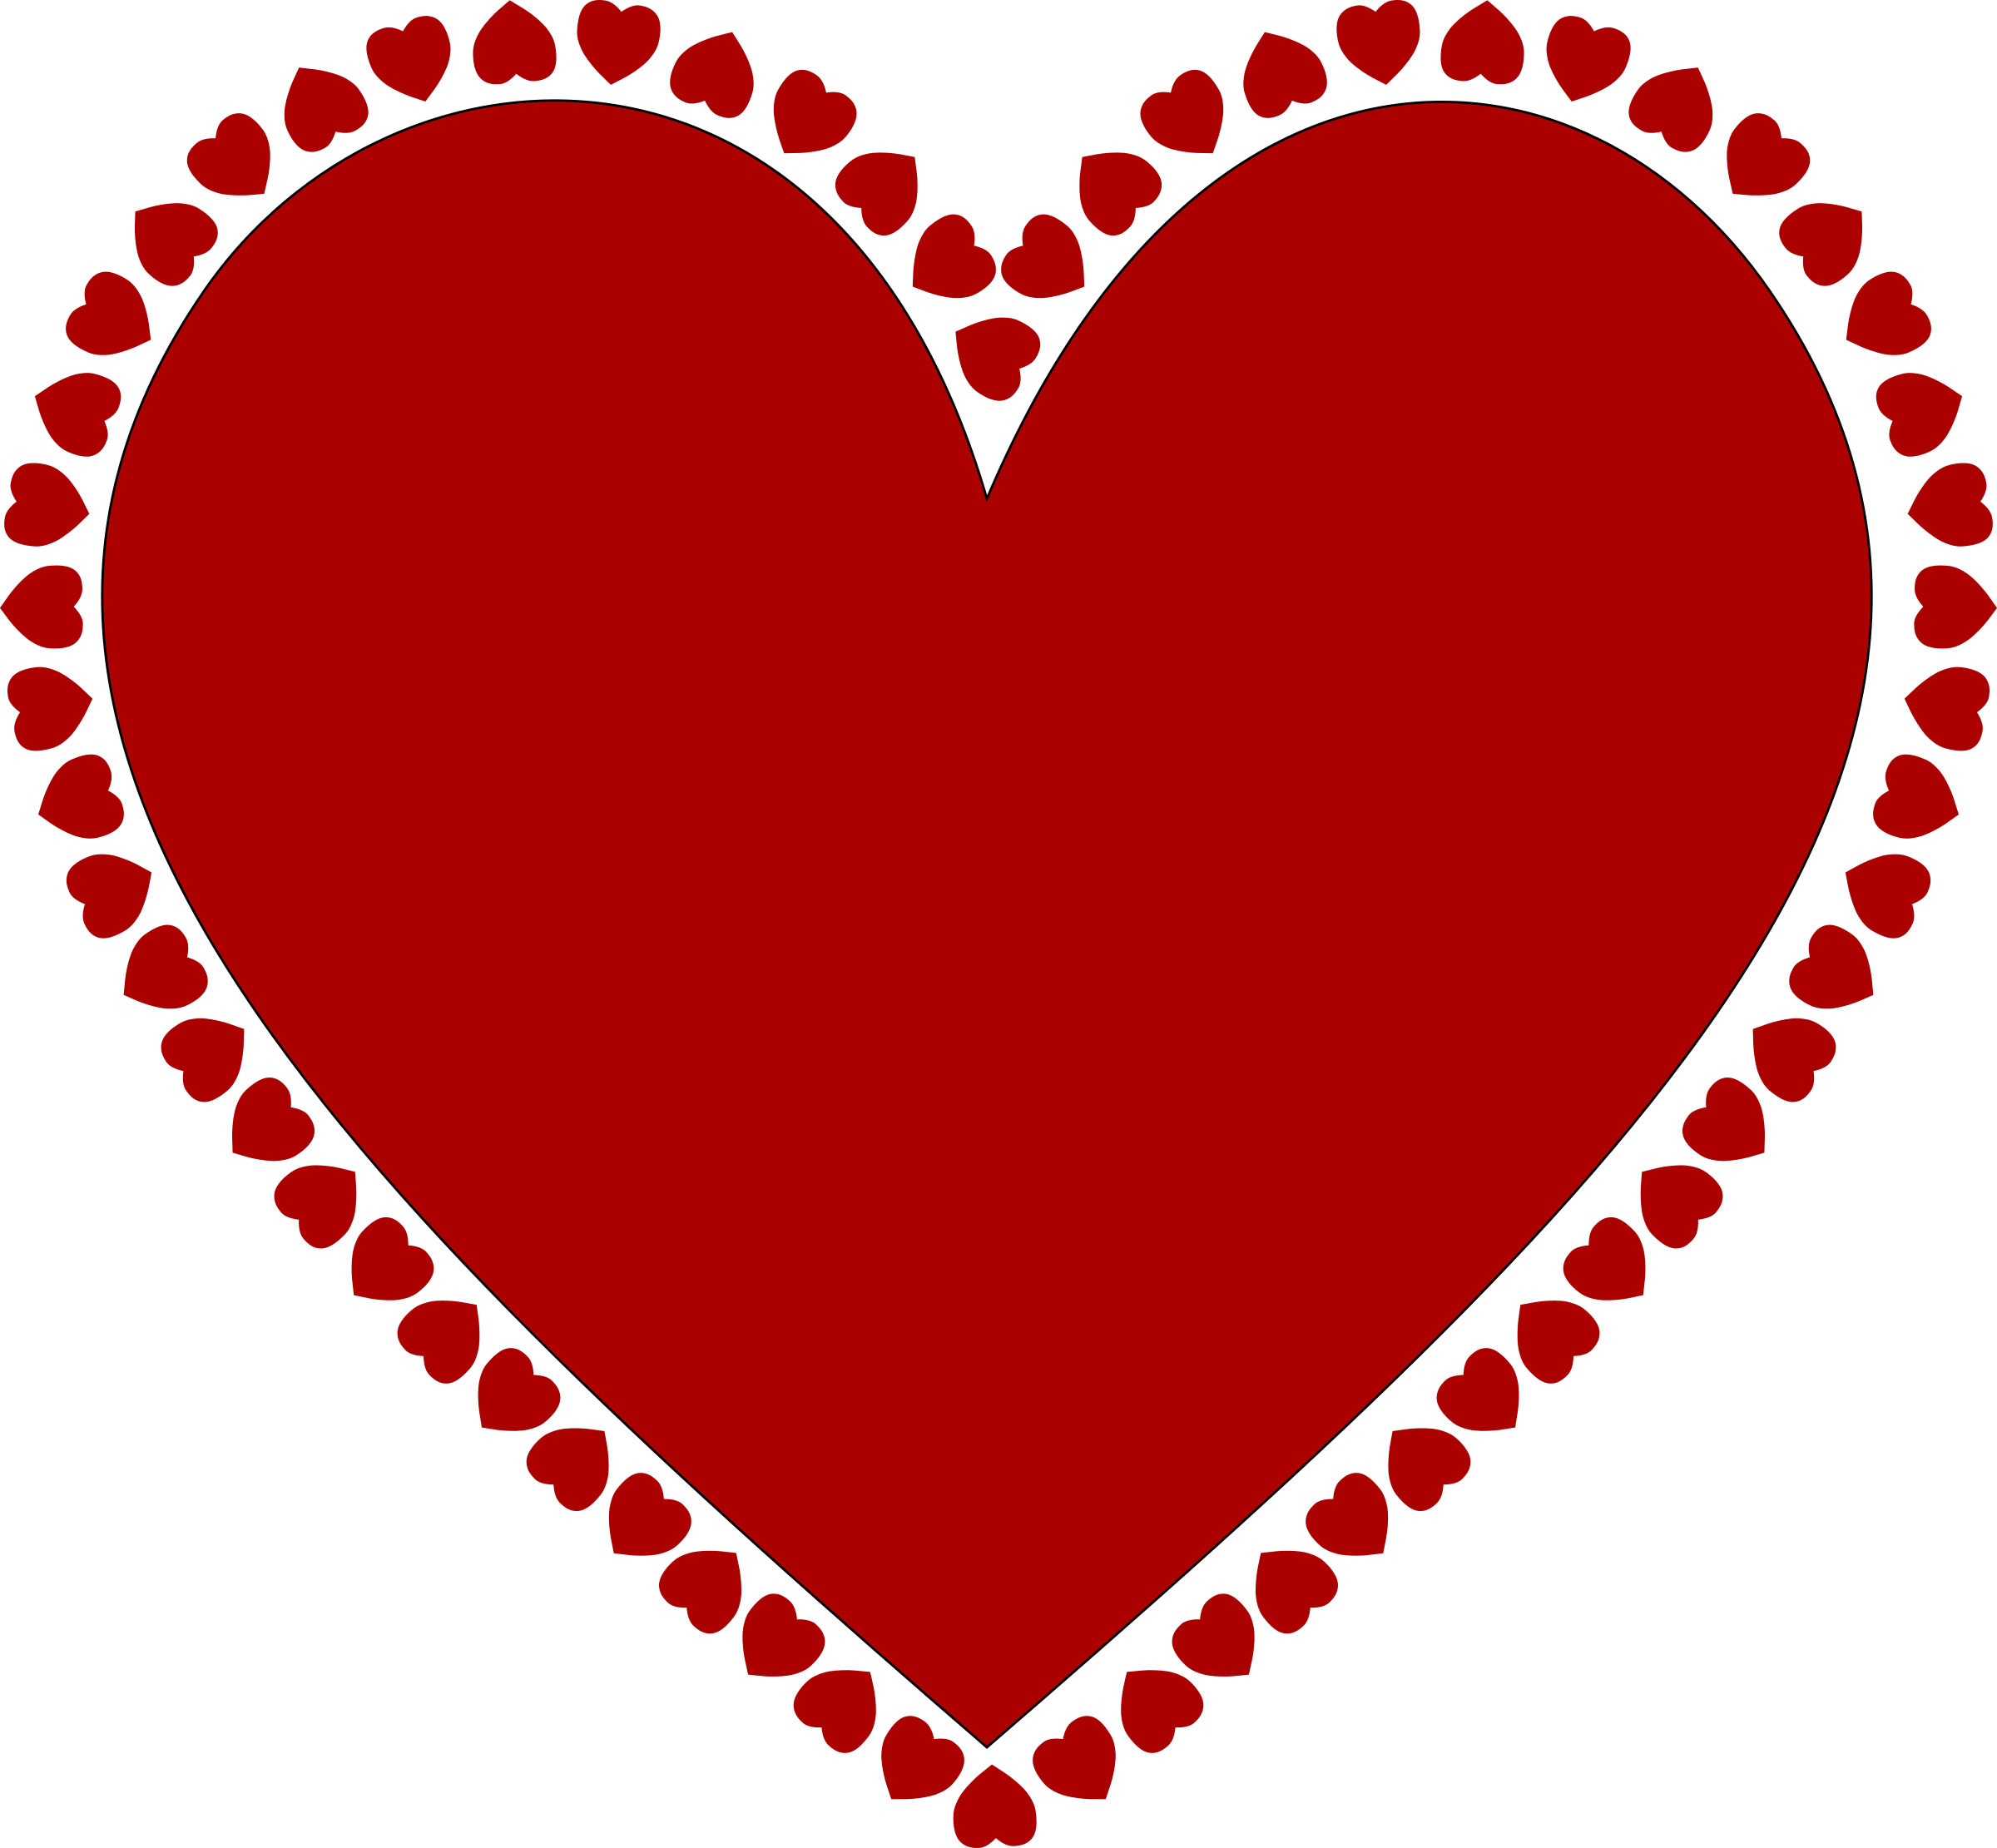 Frame of hearts Frame clipart, Heart